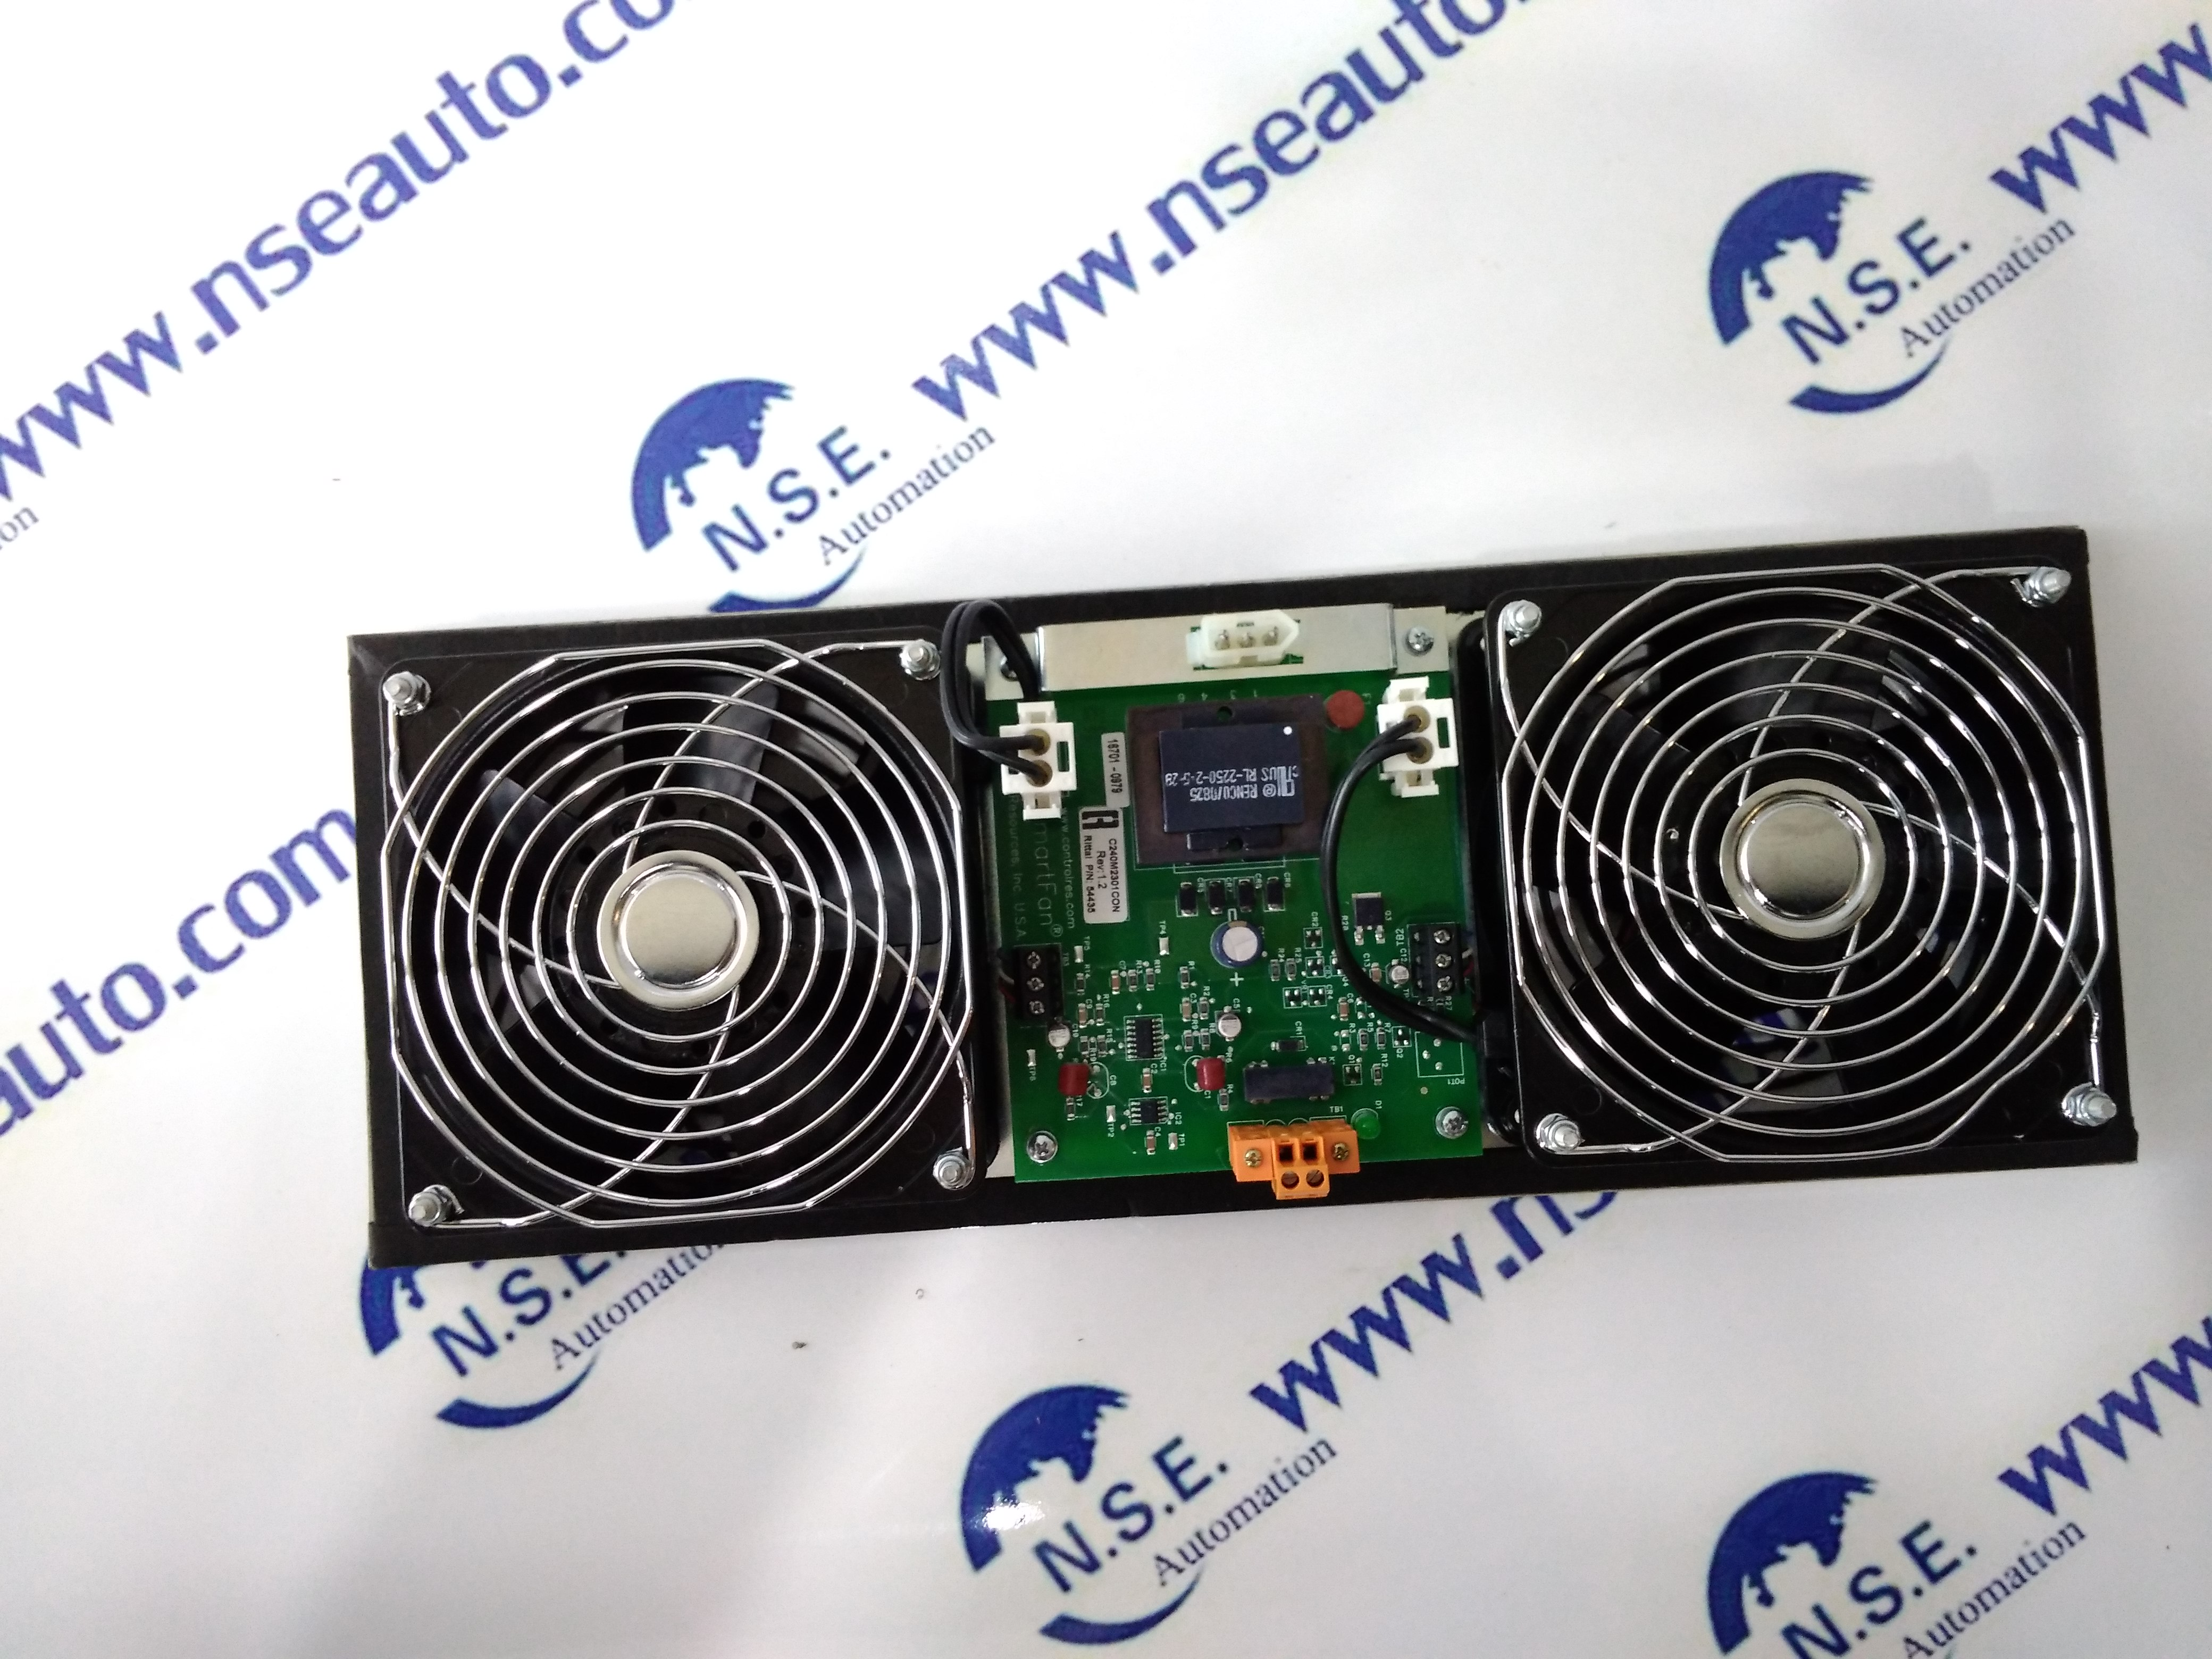 Honeywell CC-TAIX01 51308363-175 IN STOCK